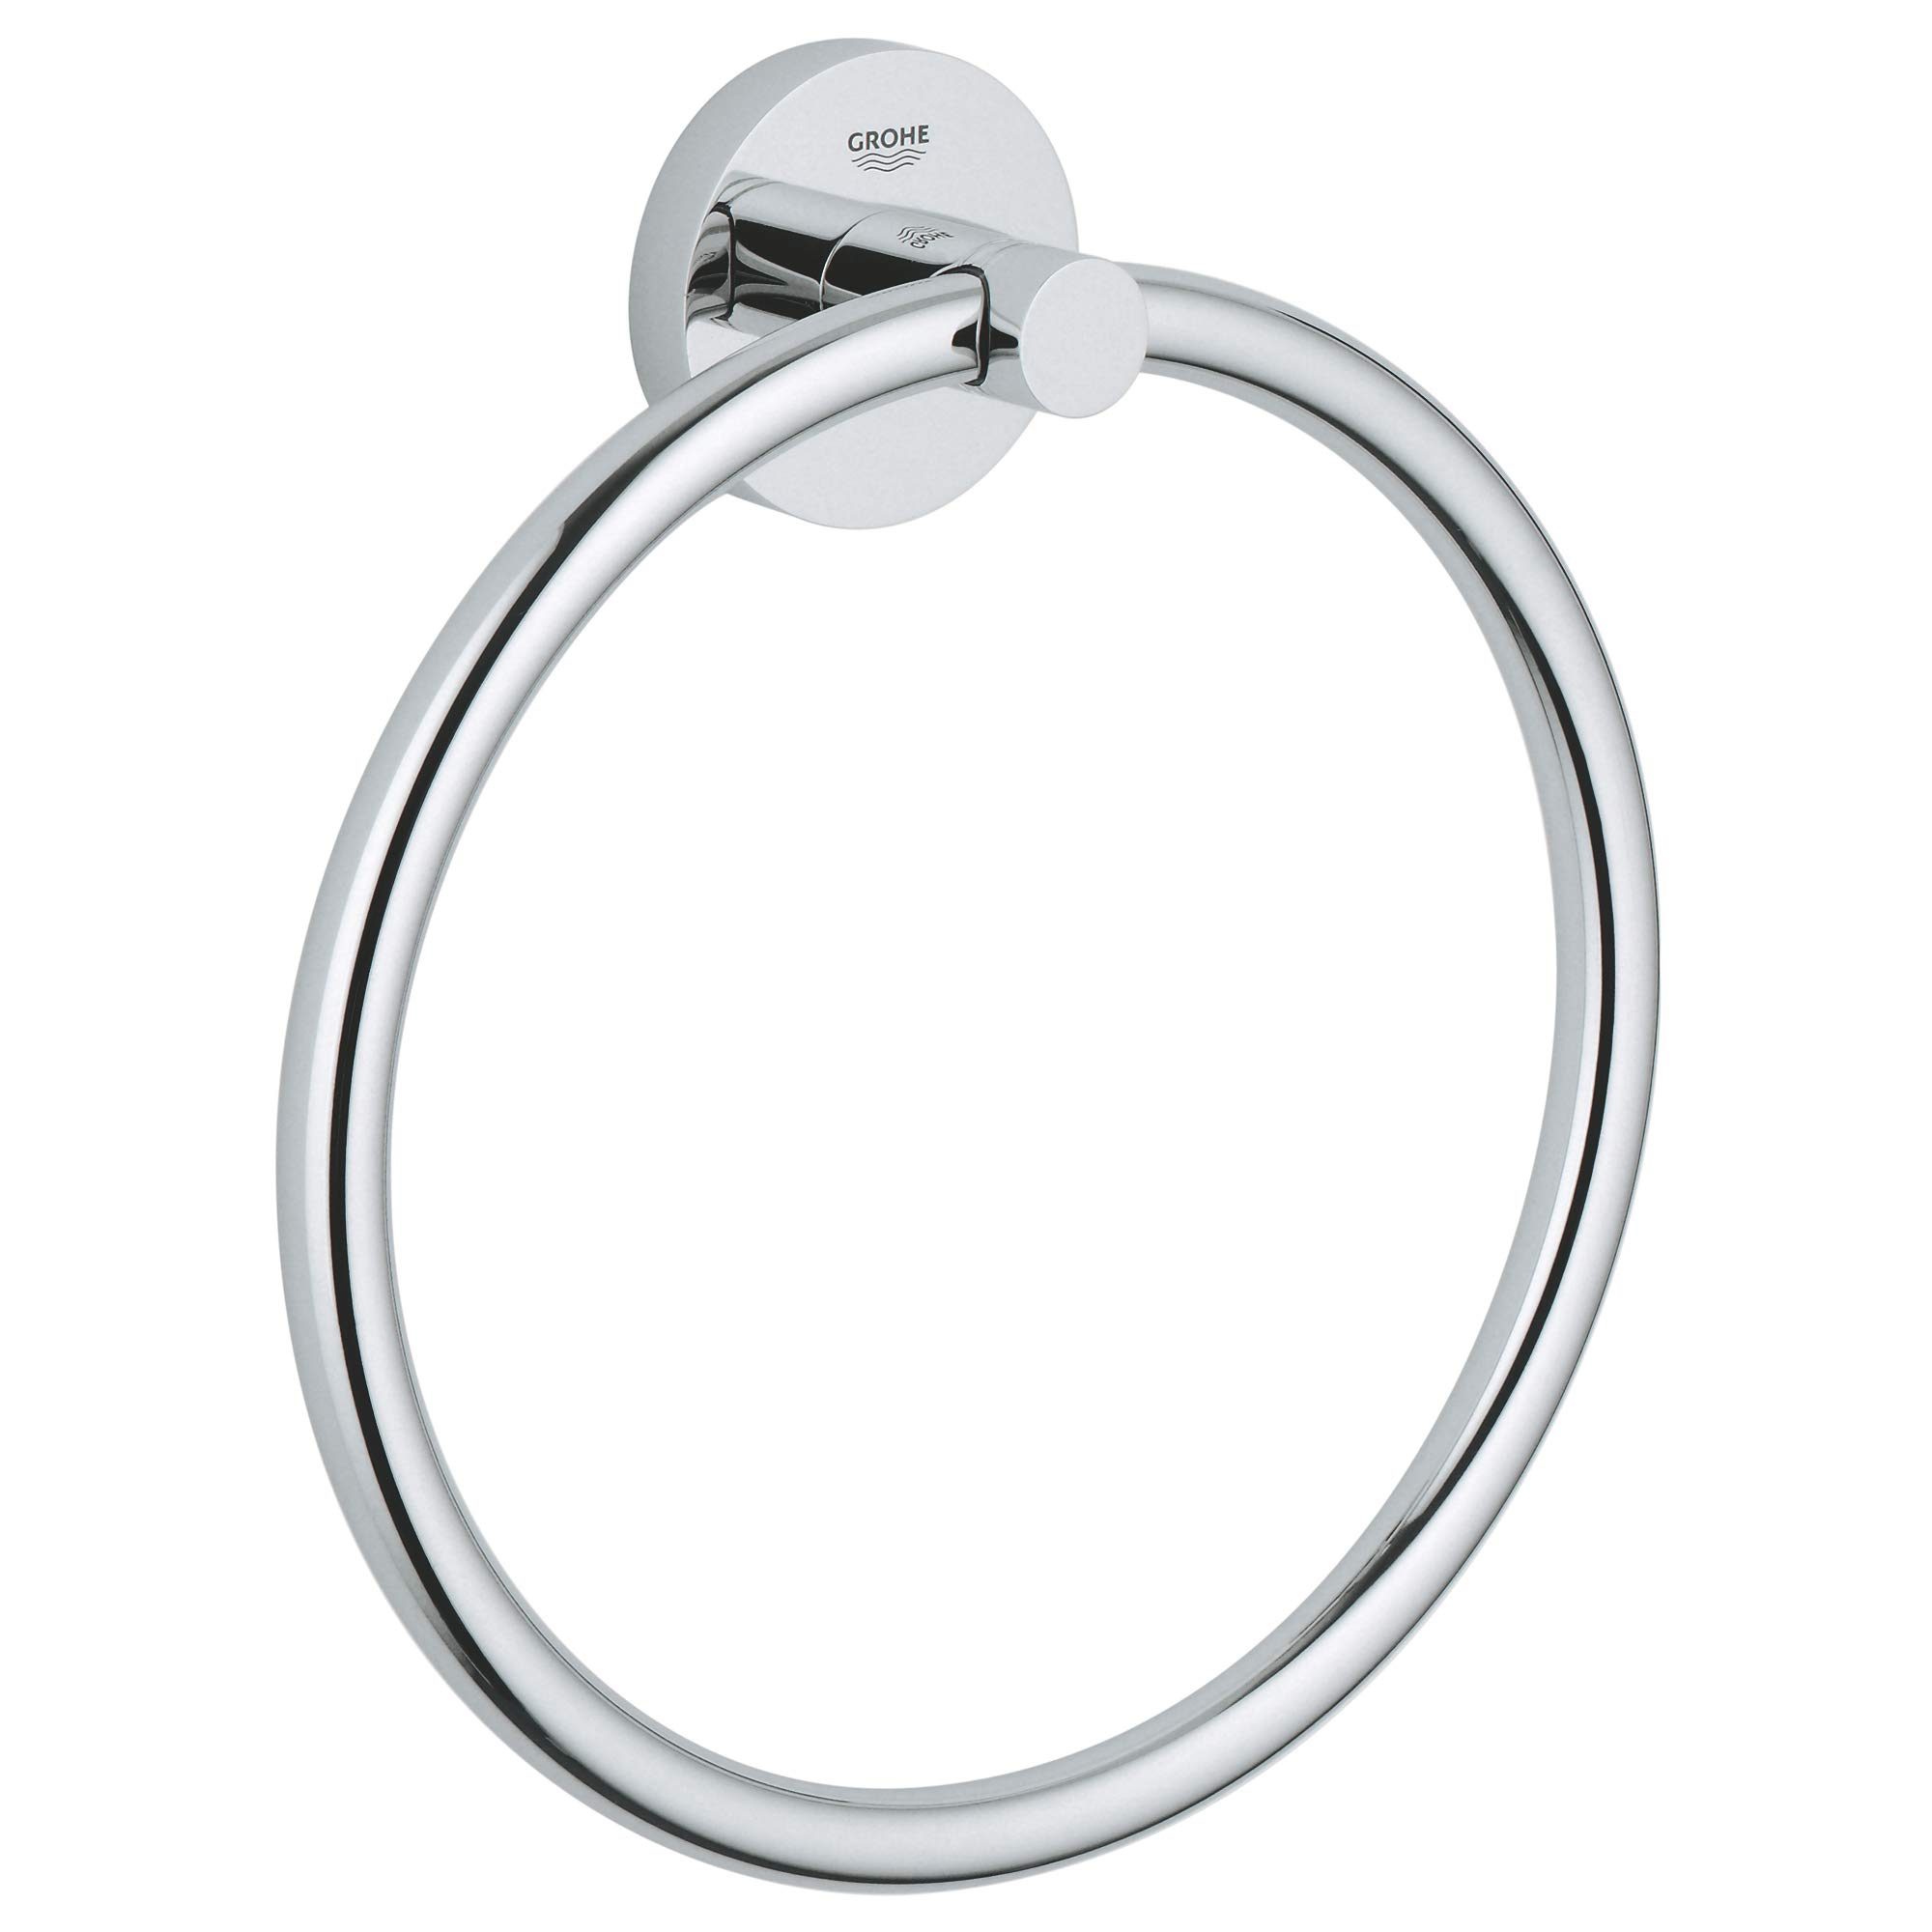 Grohe 40365001 Essentials Towel Ring, Chrome 8 Inch by GROHE